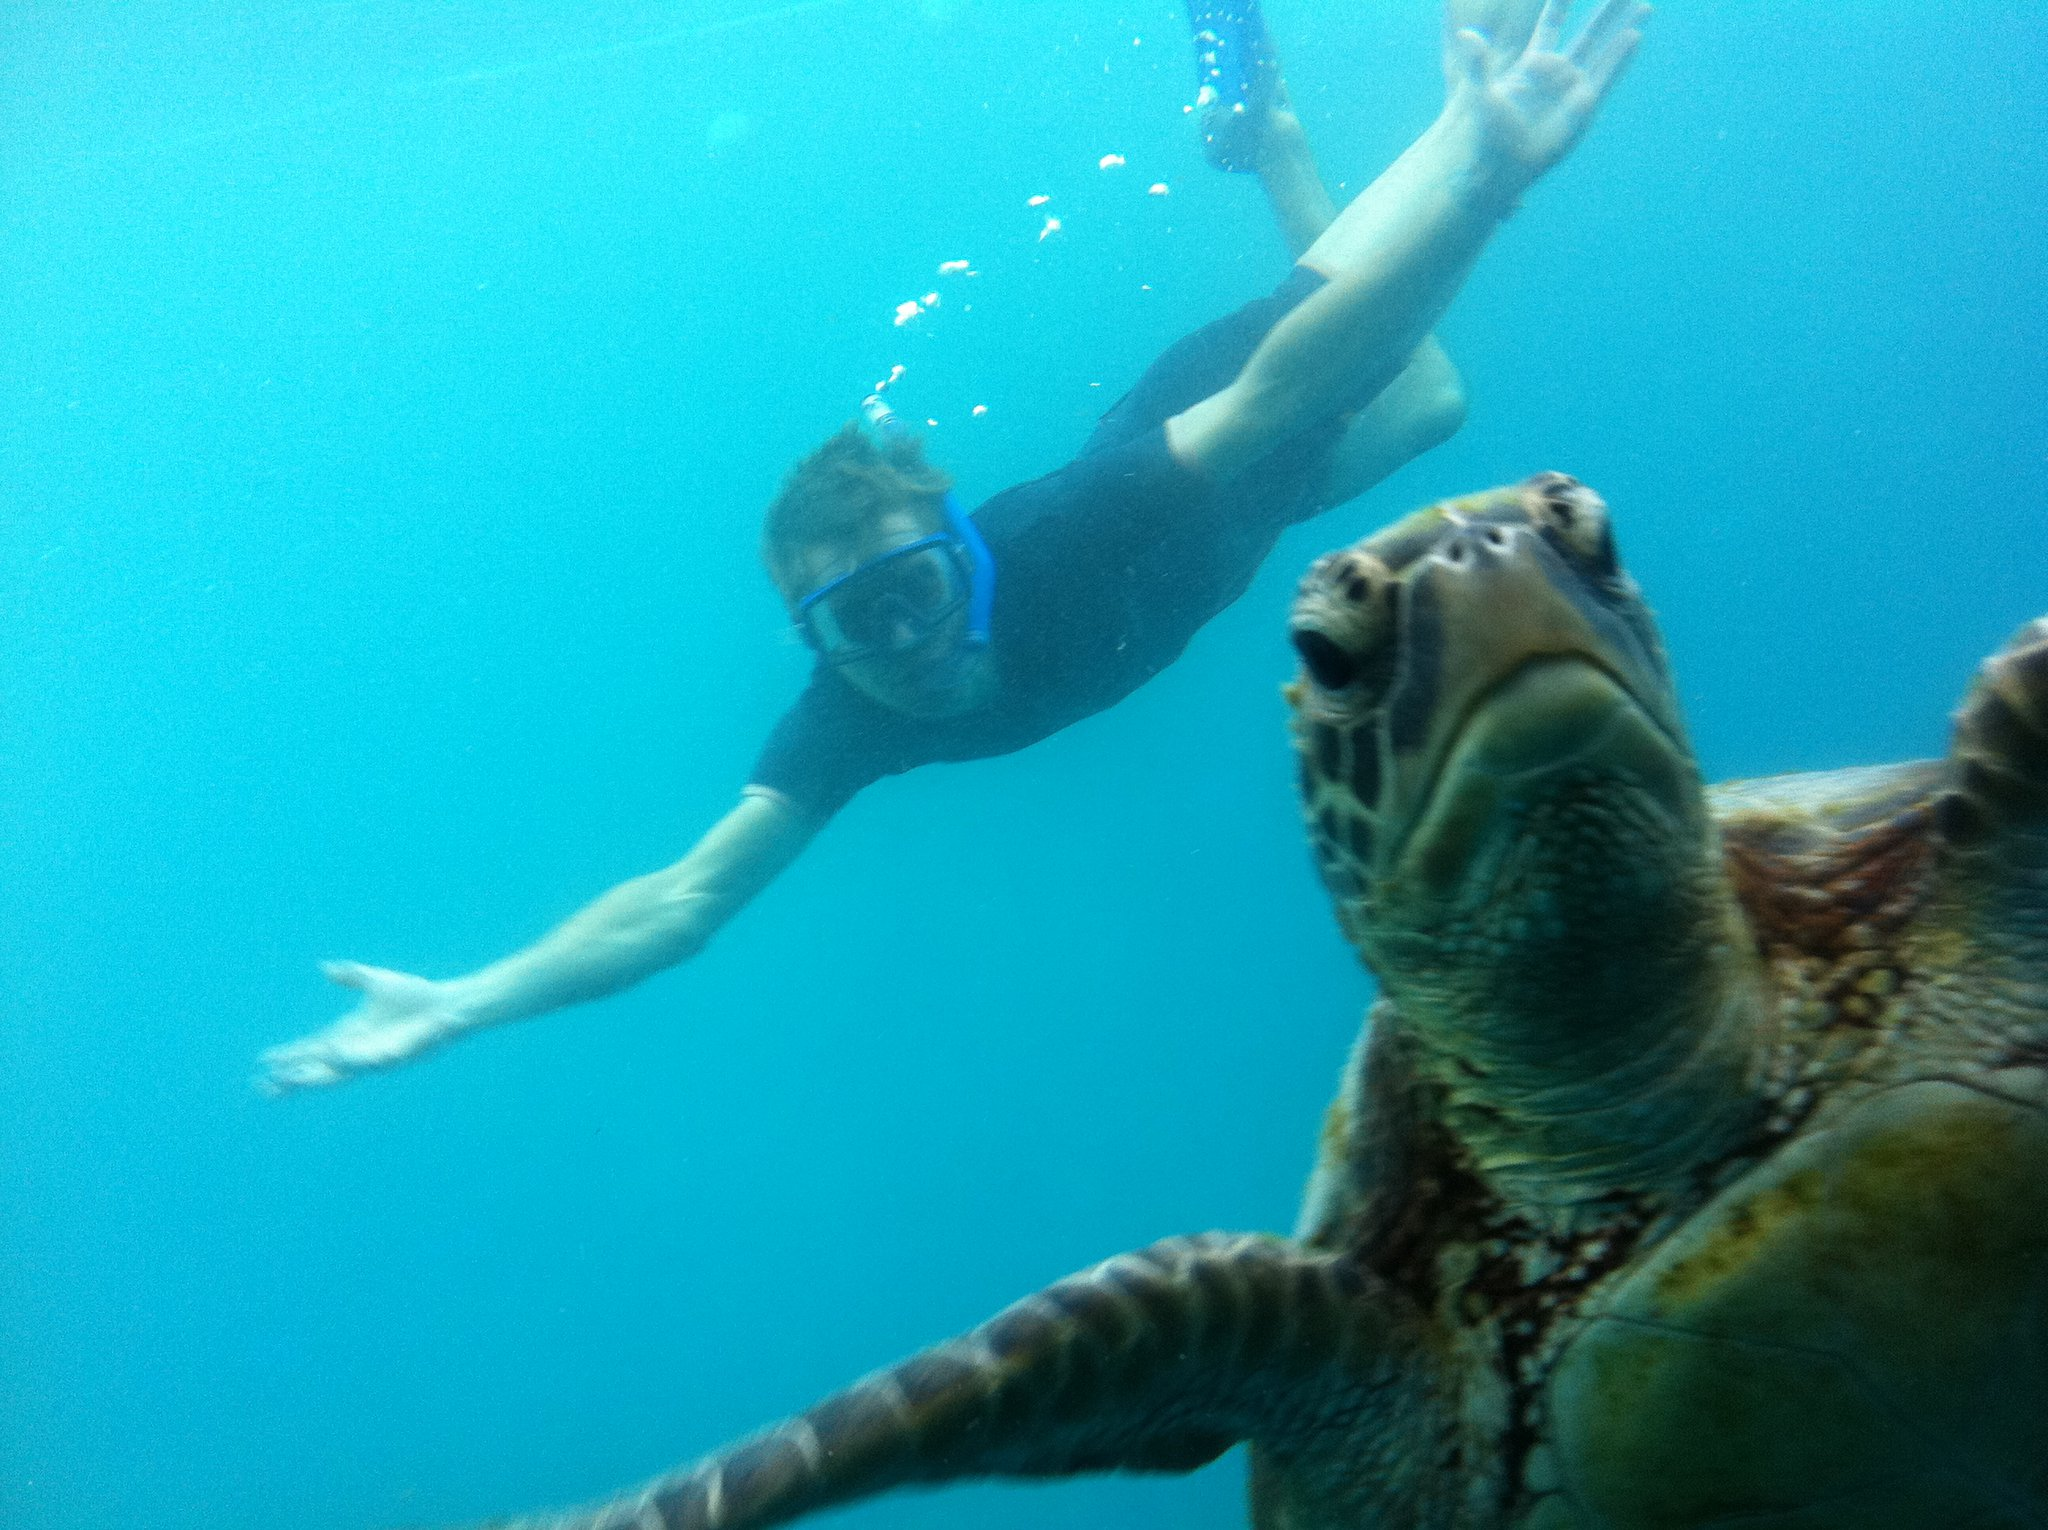 Swimming with a turtle